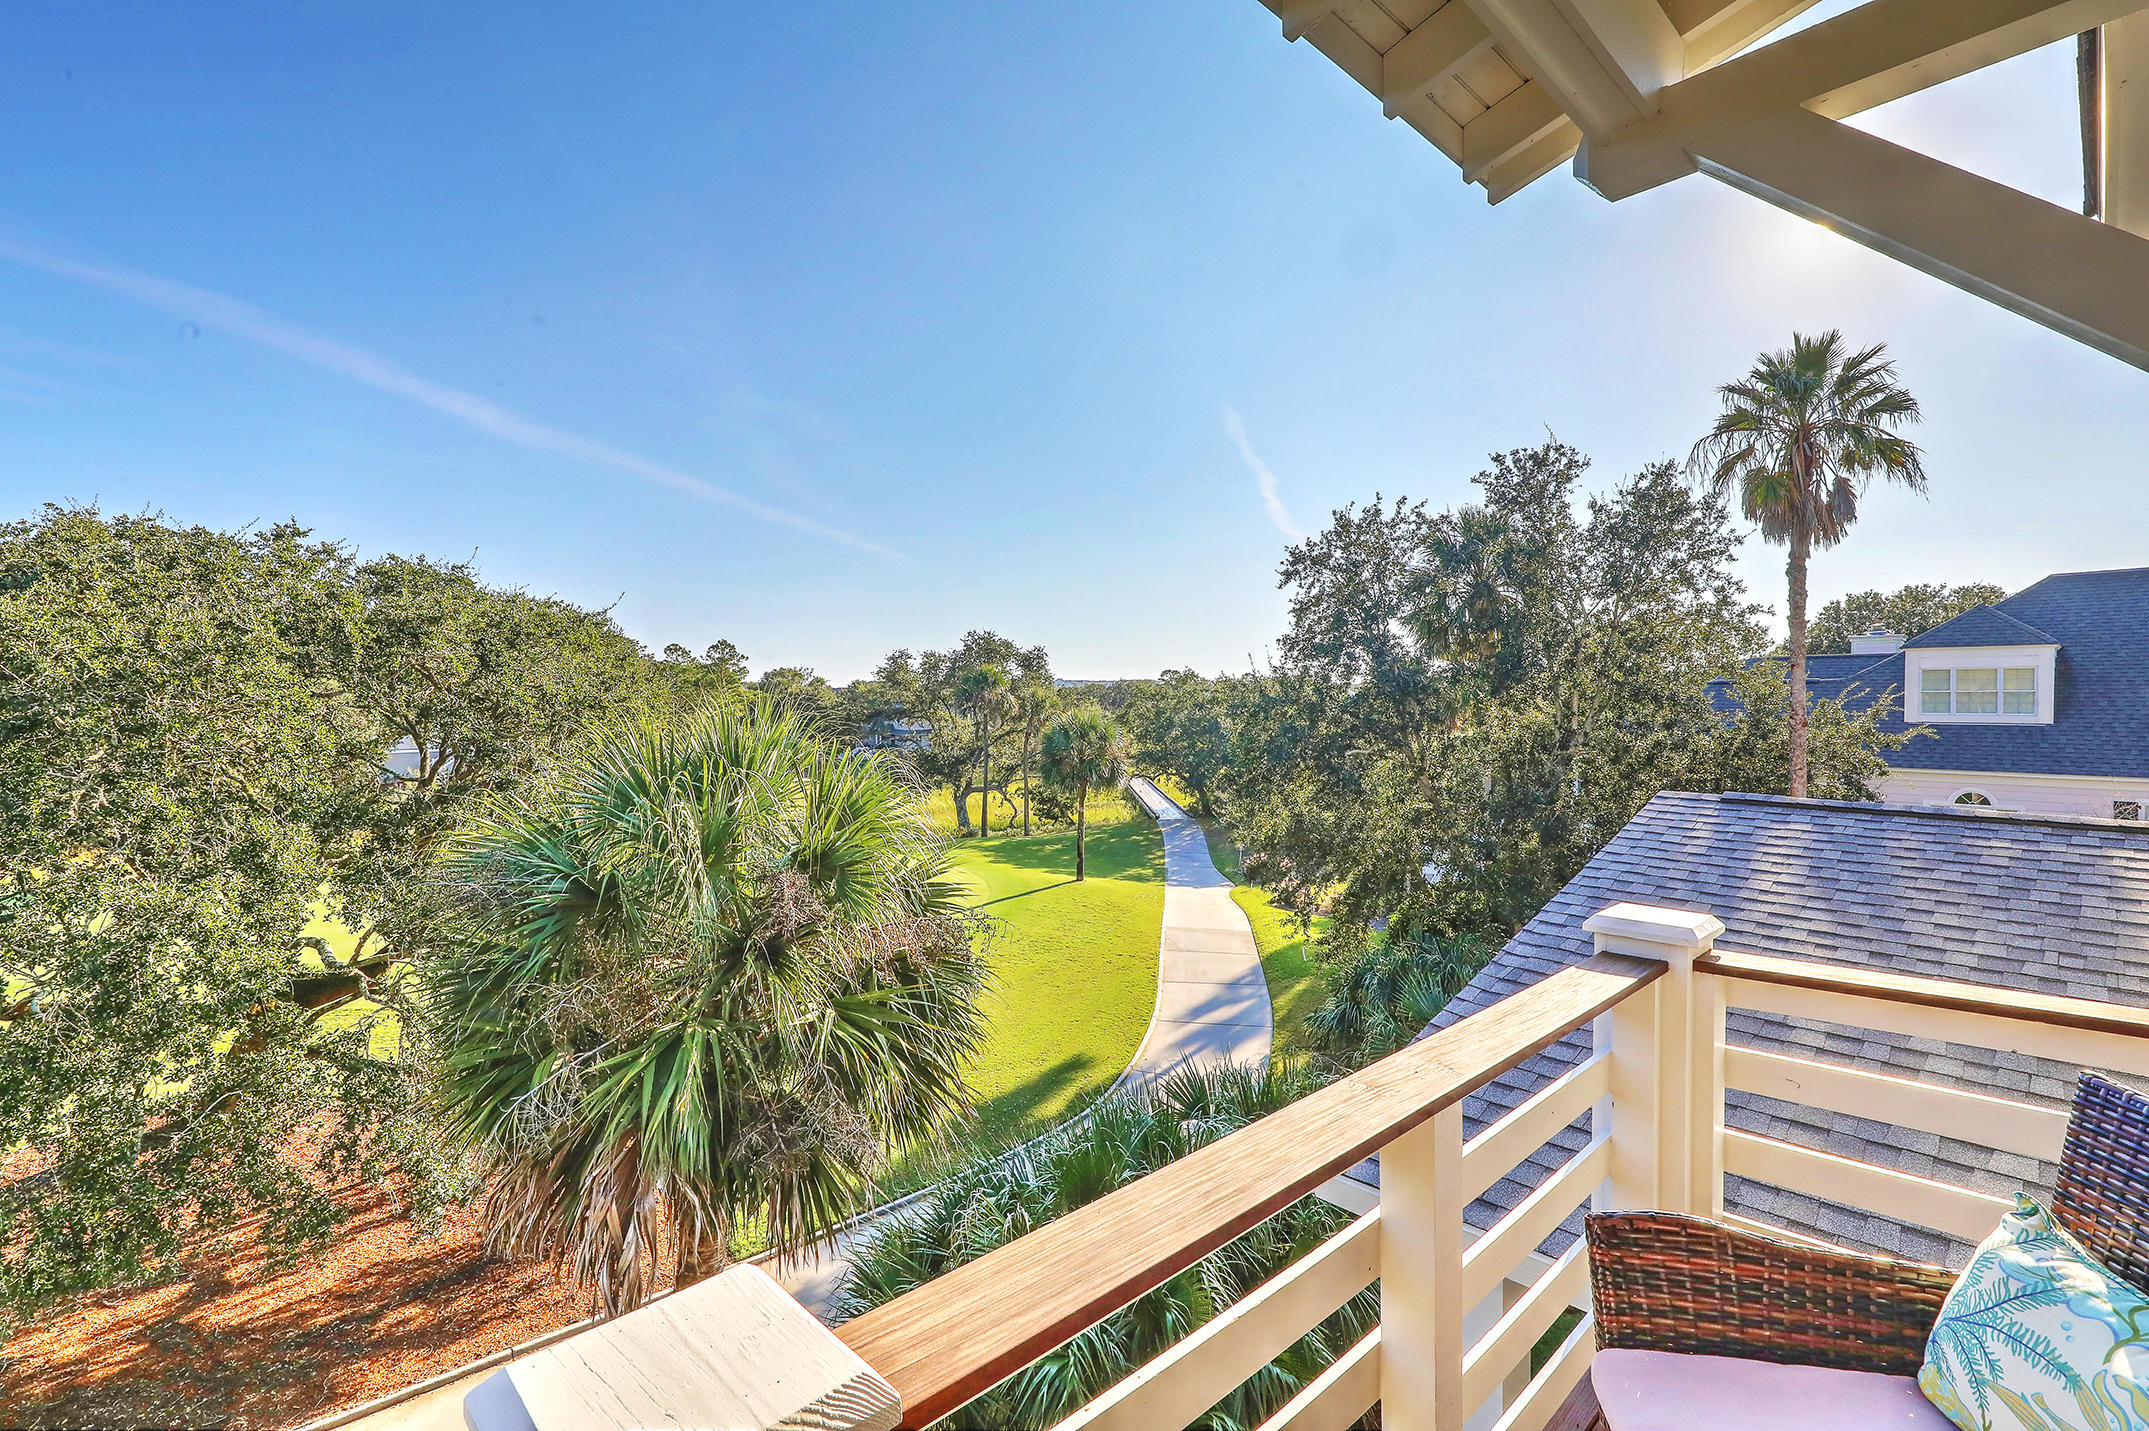 Wild Dunes Homes For Sale - 55 Seagrass, Isle of Palms, SC - 94